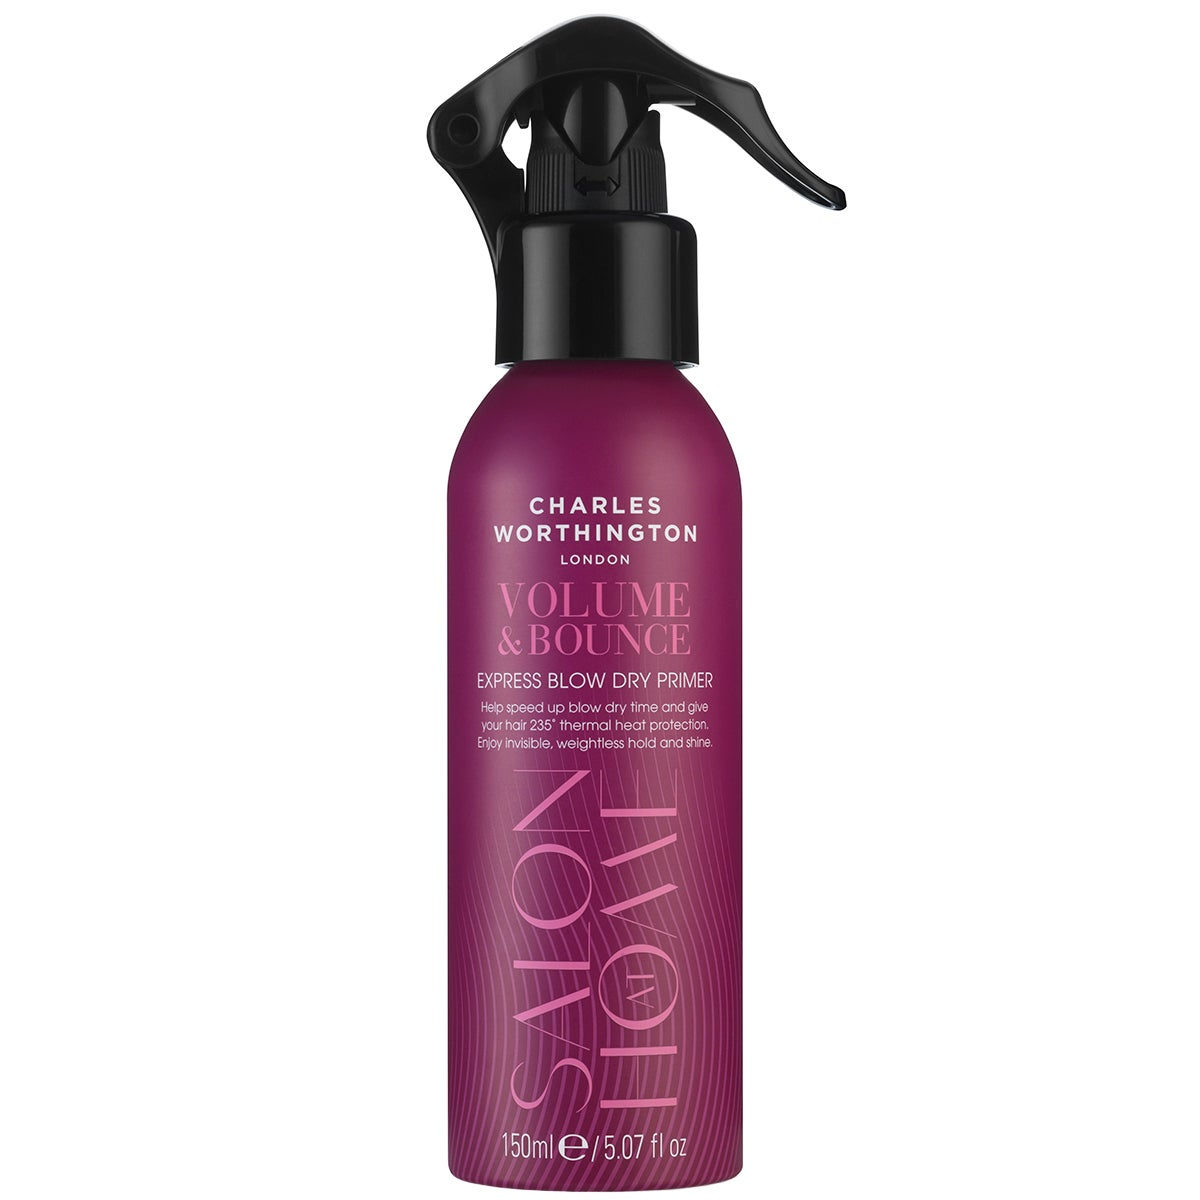 Volume & Bounce Blow Dry Primer